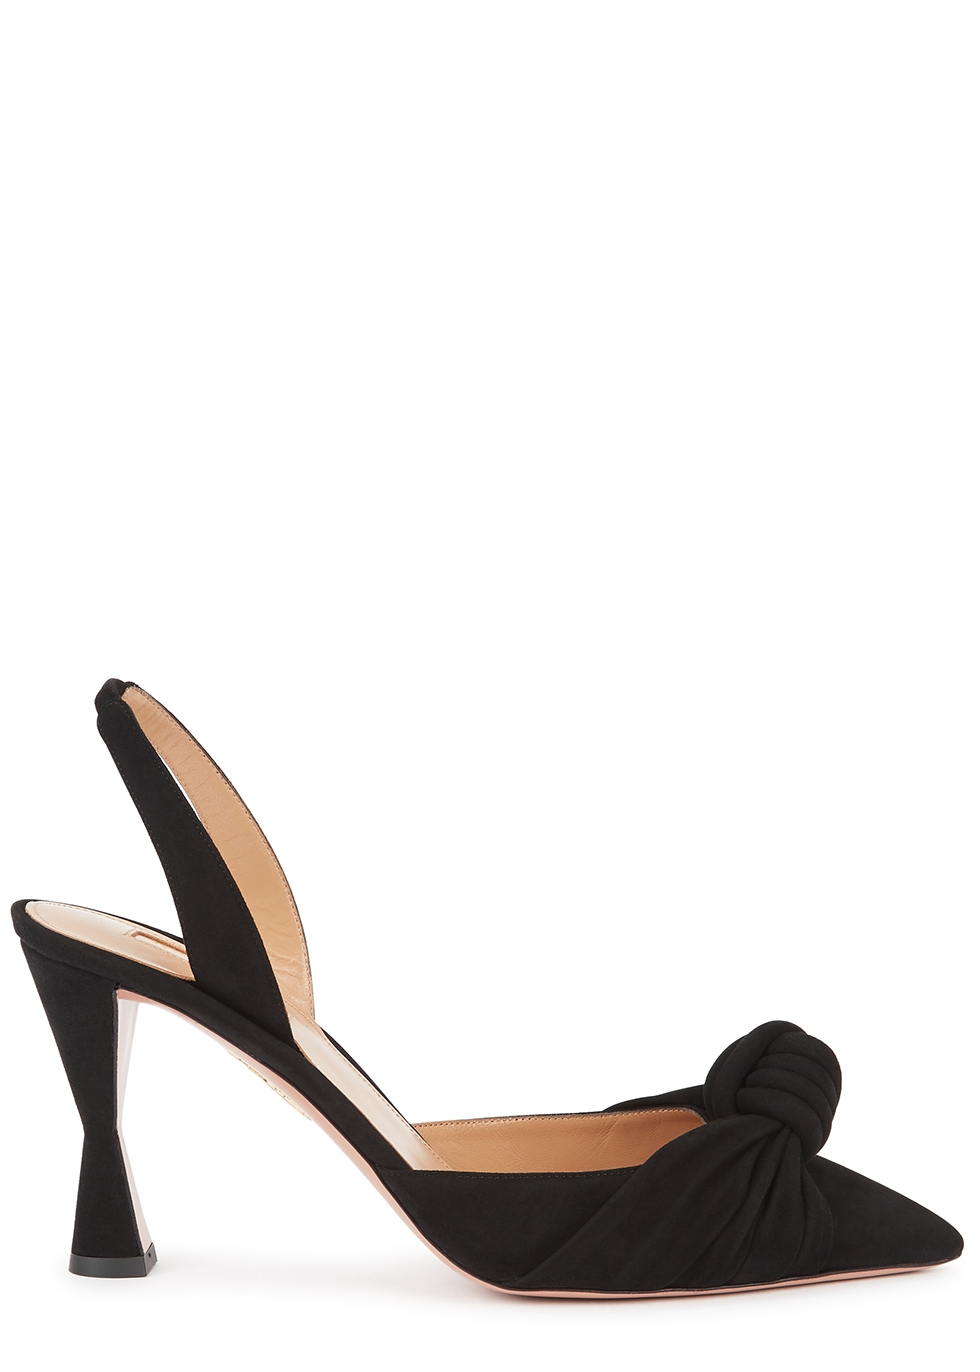 Kiki 85 black suede slingback pumps